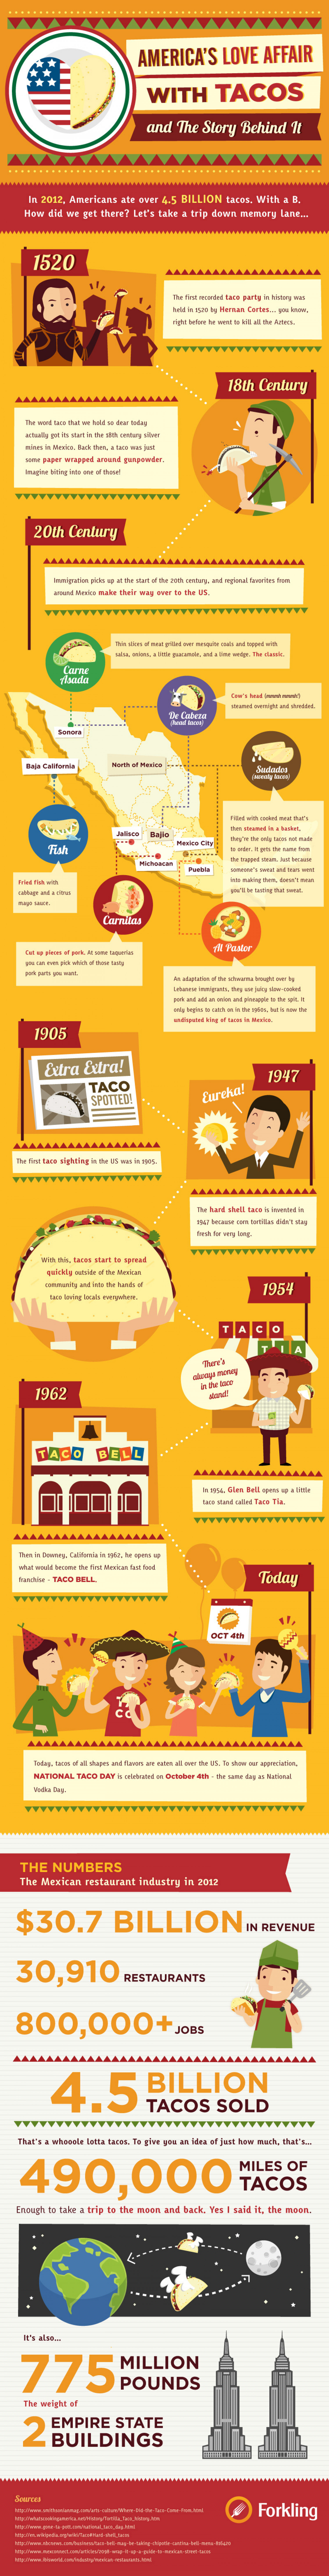 America's love affair with tacos and the story behind it Infographic